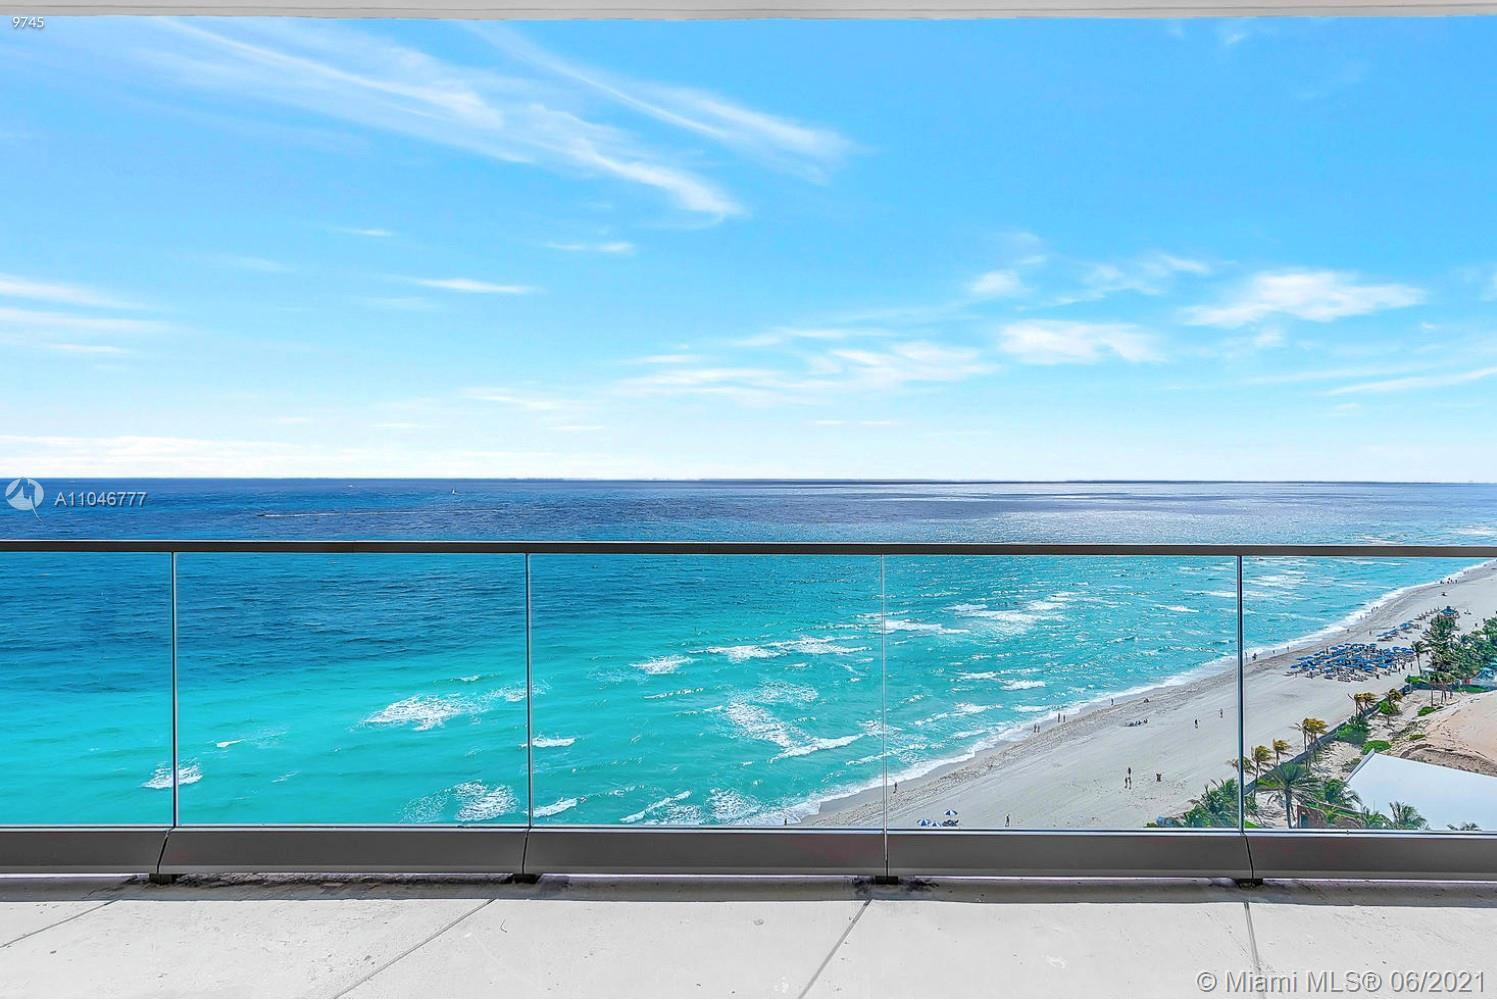 Best price for a 4 bedroom at the brand new Armani Casa Miami! The first and only Armani building in